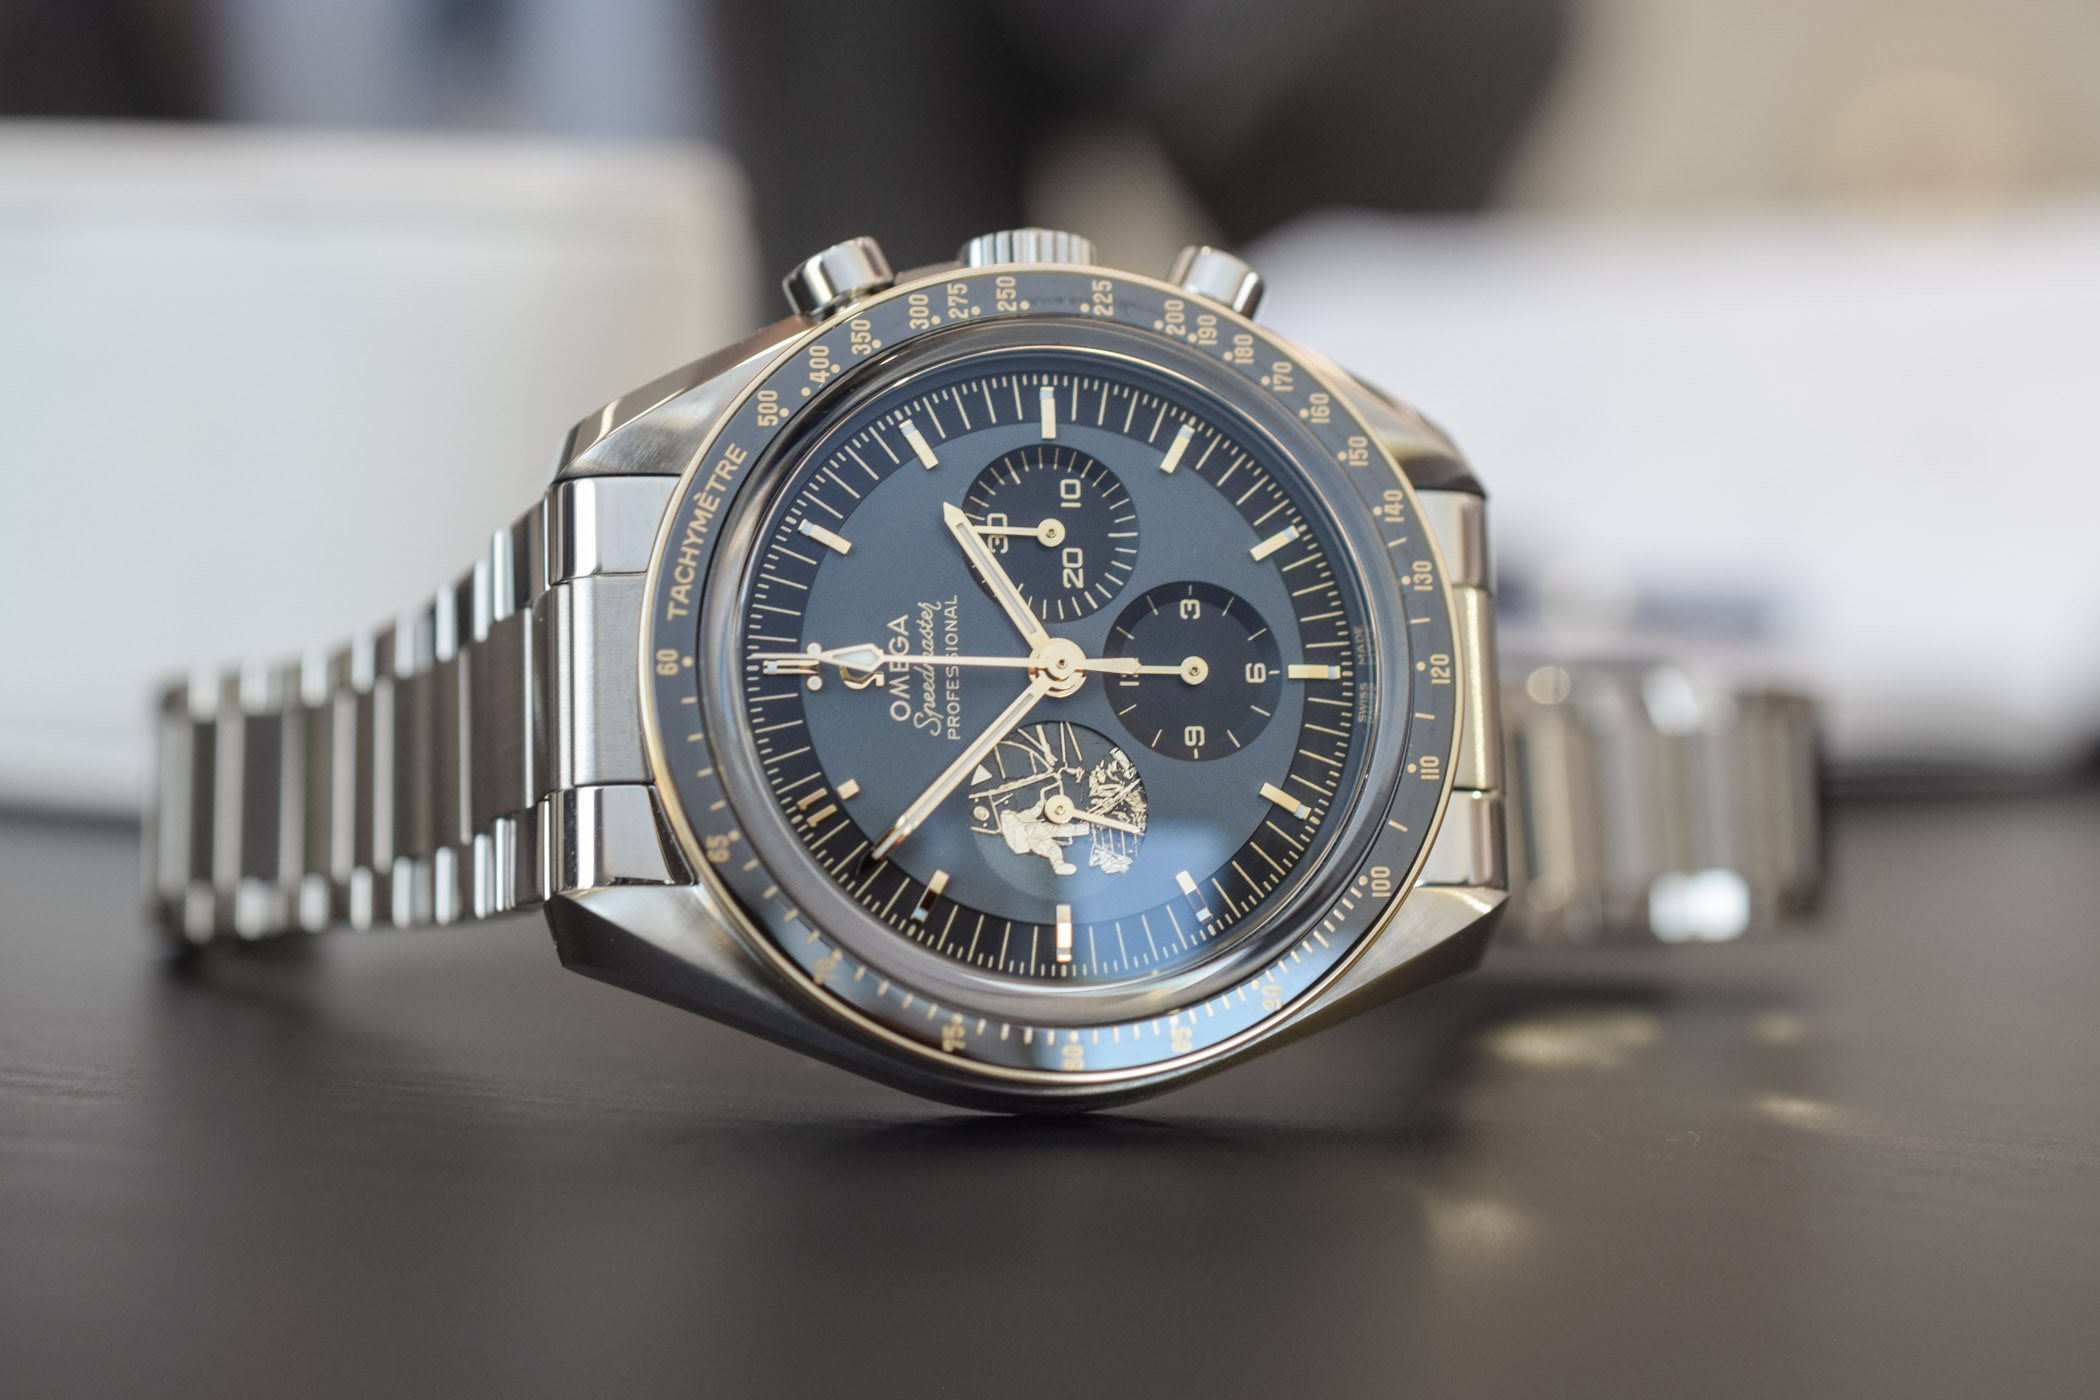 Introducing - OMEGA Speedmaster Apollo 11 50th Anniversary